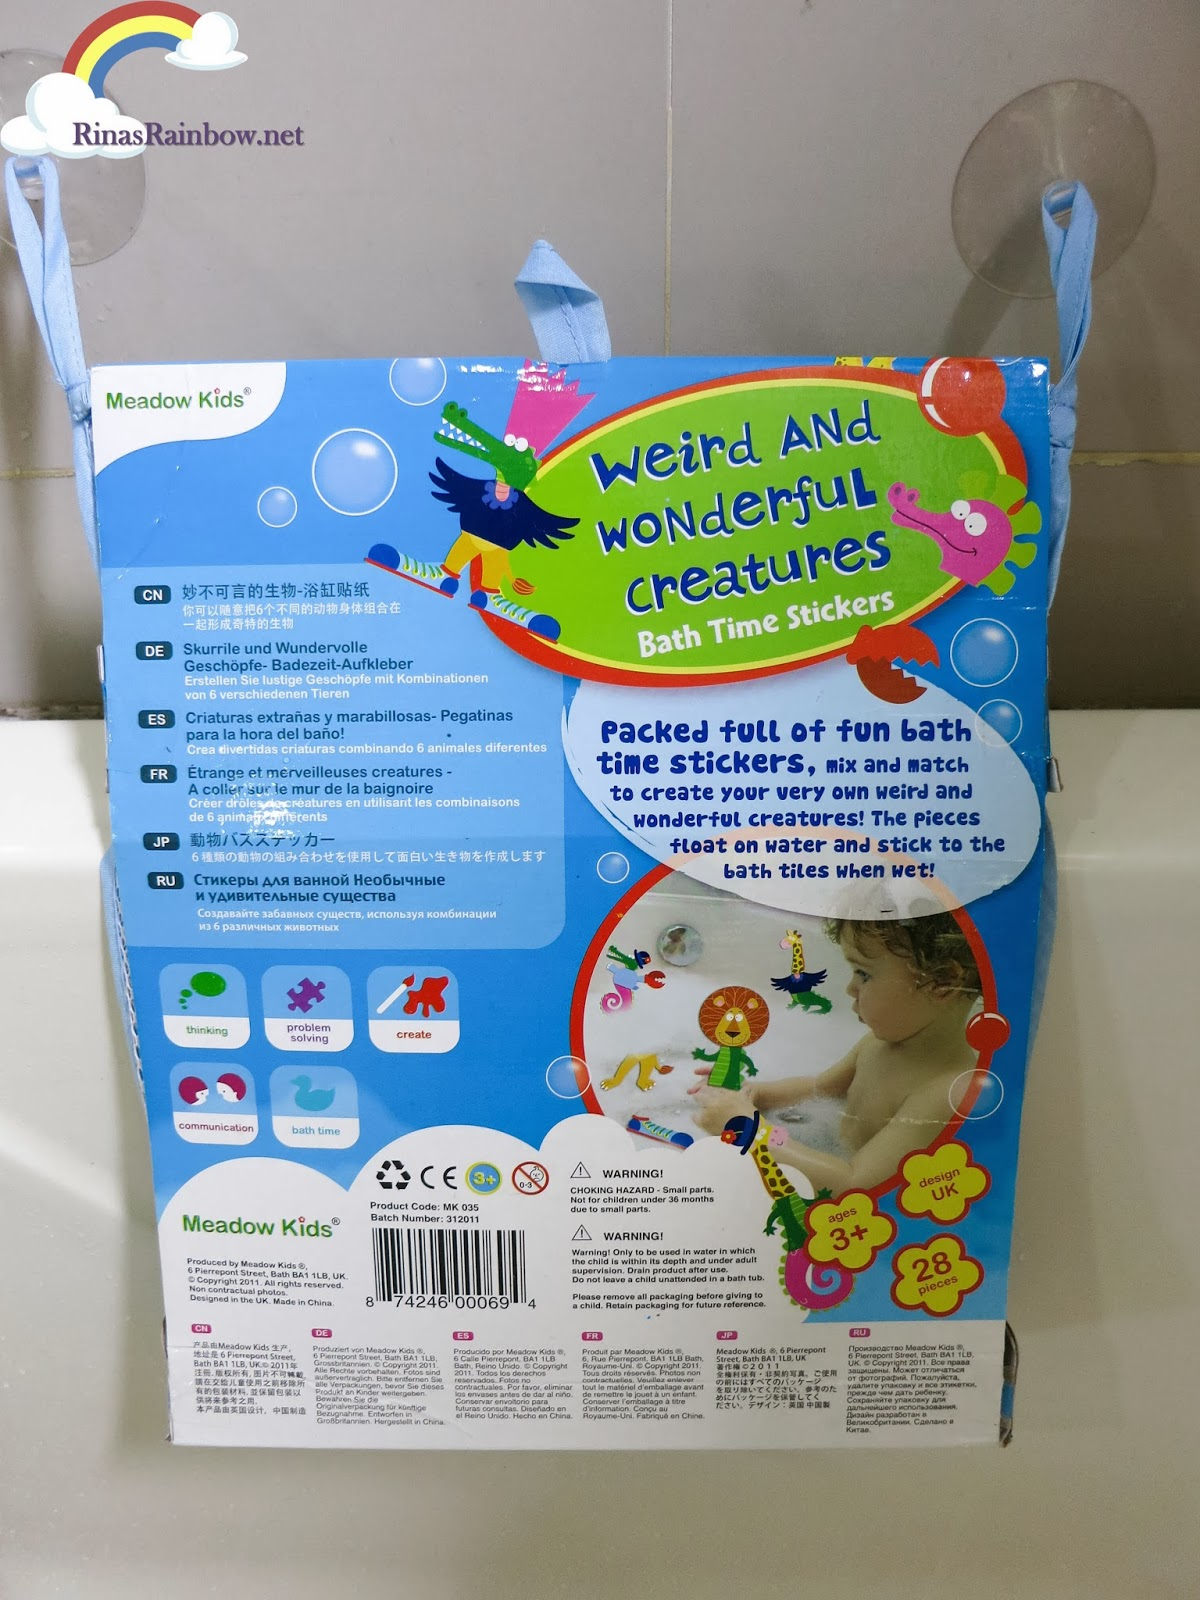 Meadow Kids bath stickers